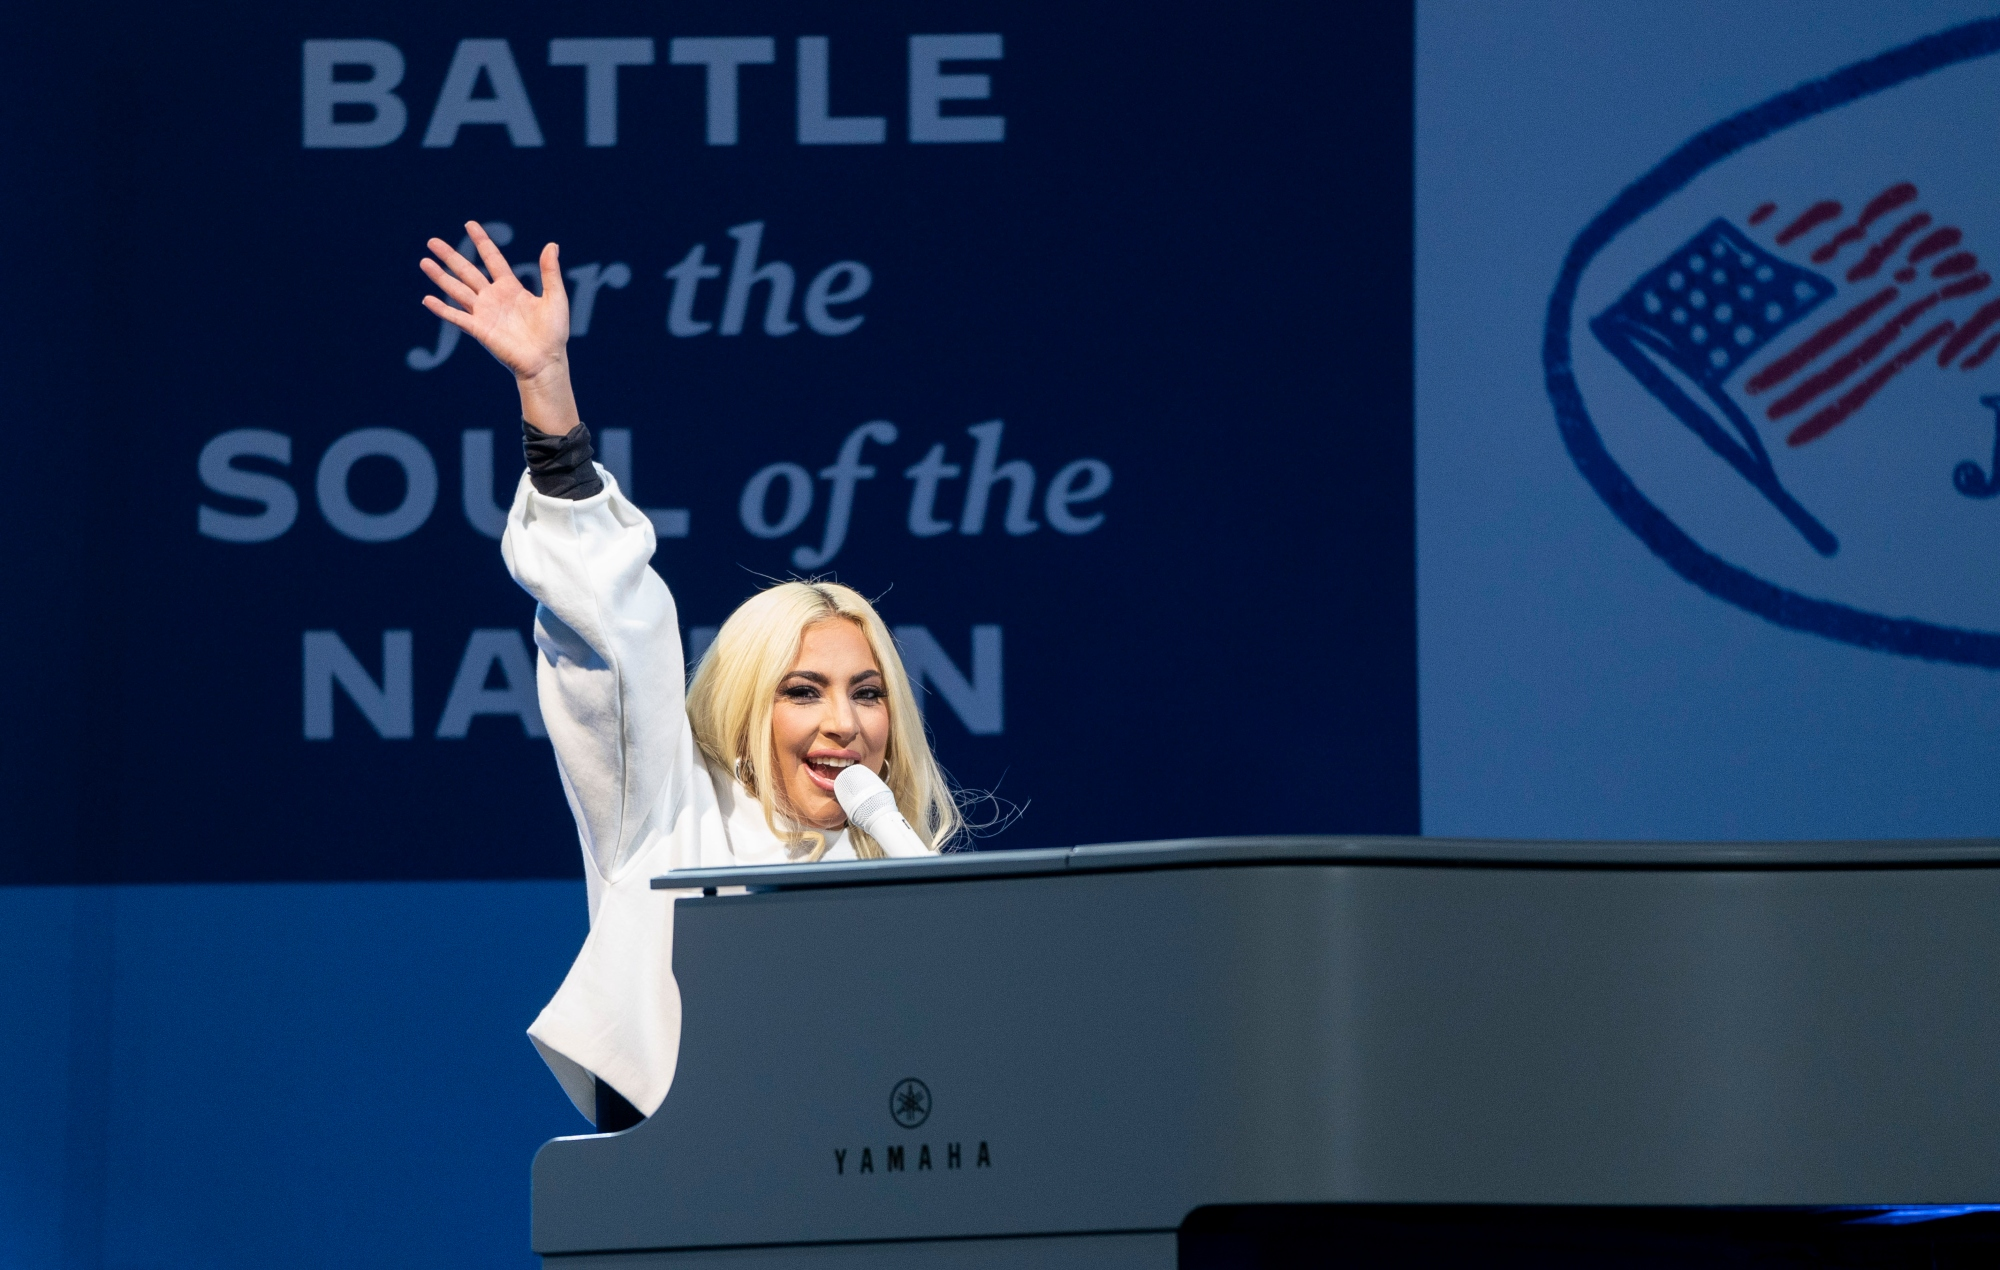 Lady Gaga performs two songs at BIden's final rally